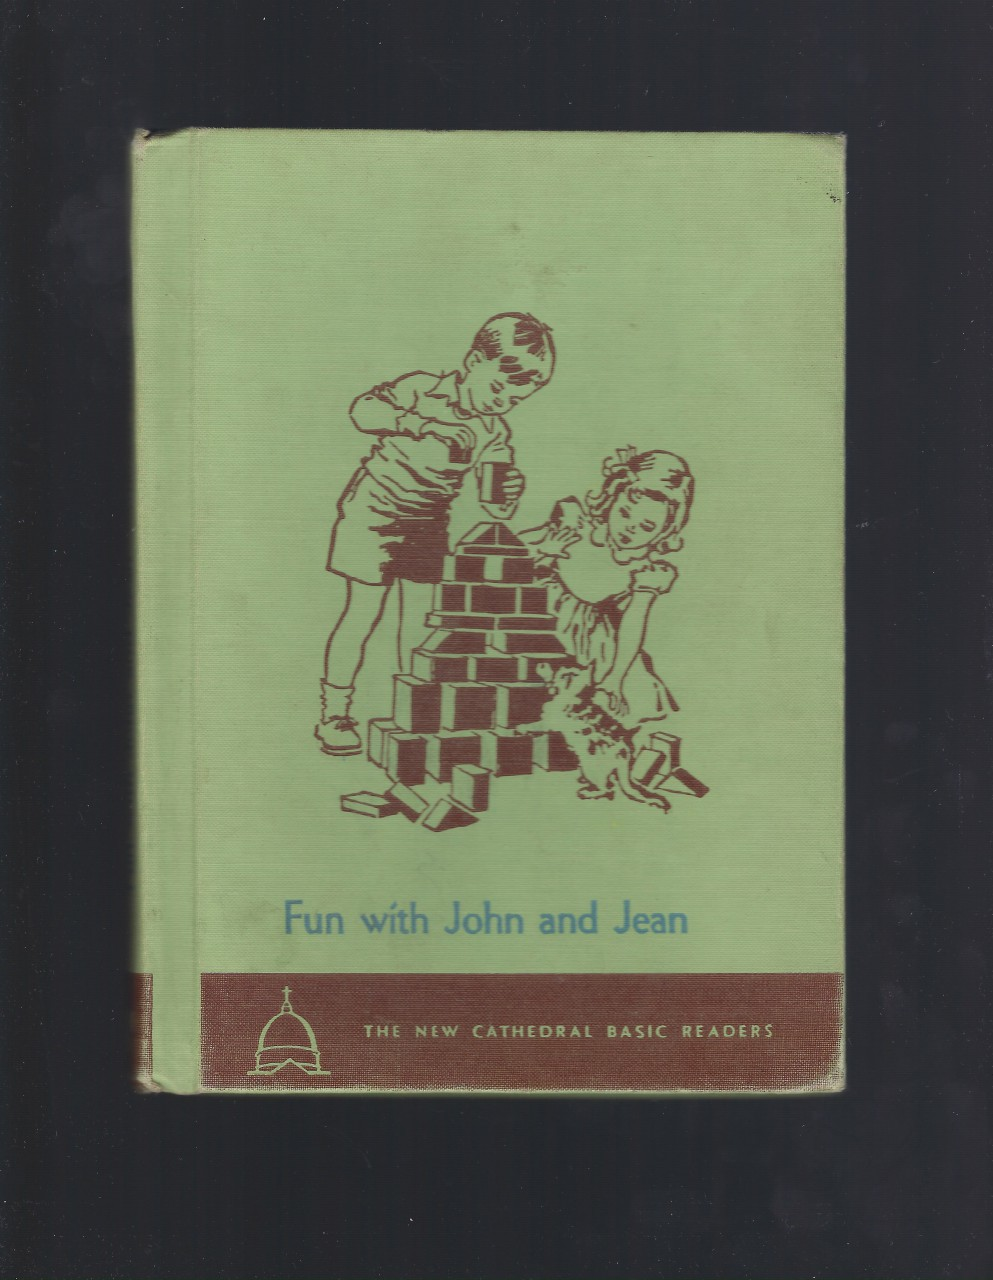 Fun with John and Jean New Cathedral Basic Readers 1952, O'Brien, John A.; Campbell, Eleanor; Ward, Keith [Illustrator]